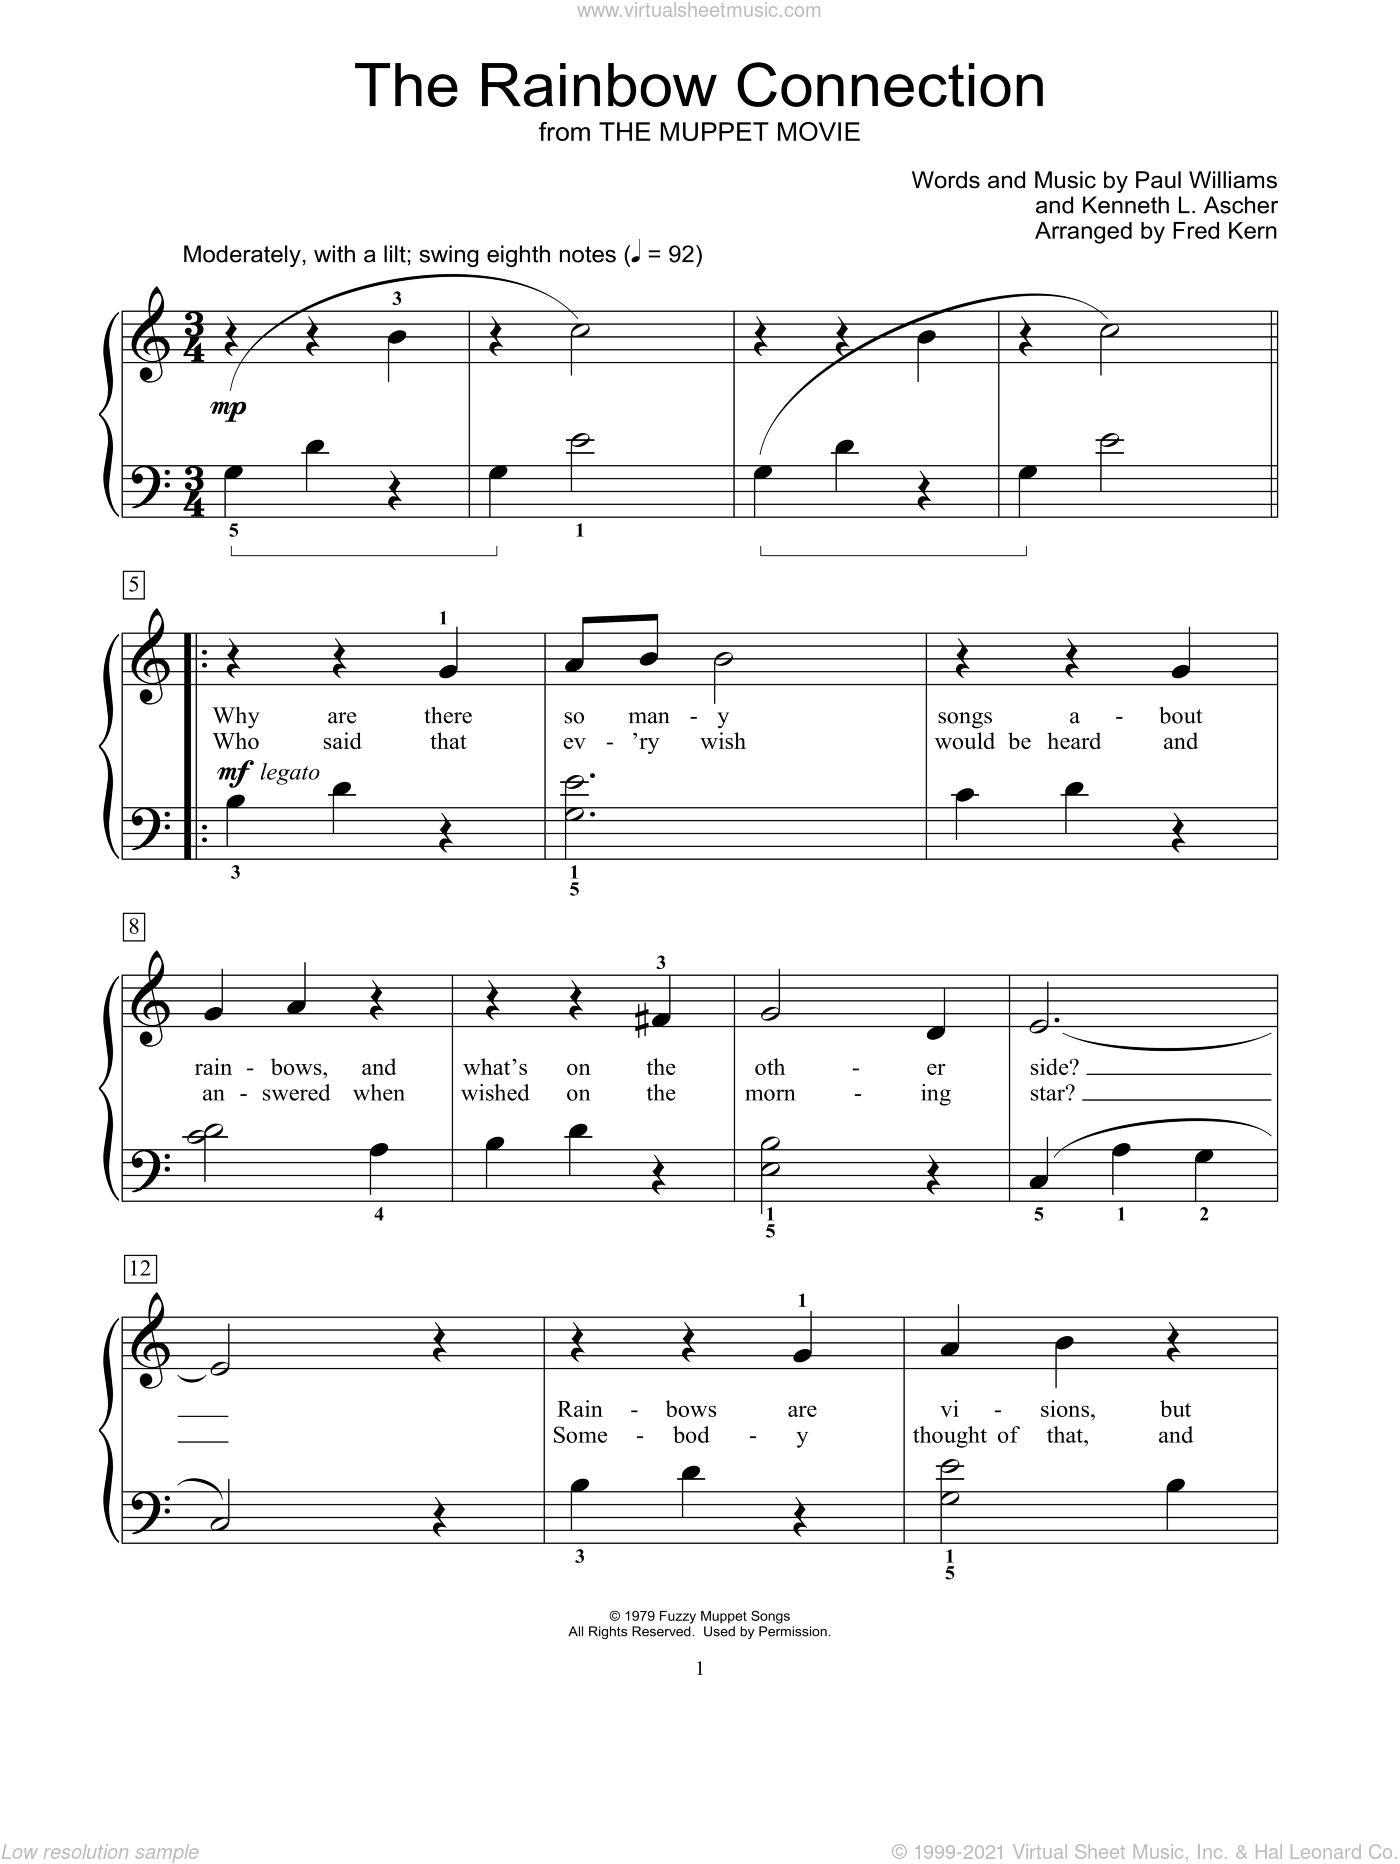 The Rainbow Connection sheet music for piano solo (elementary) by Kenneth L. Ascher